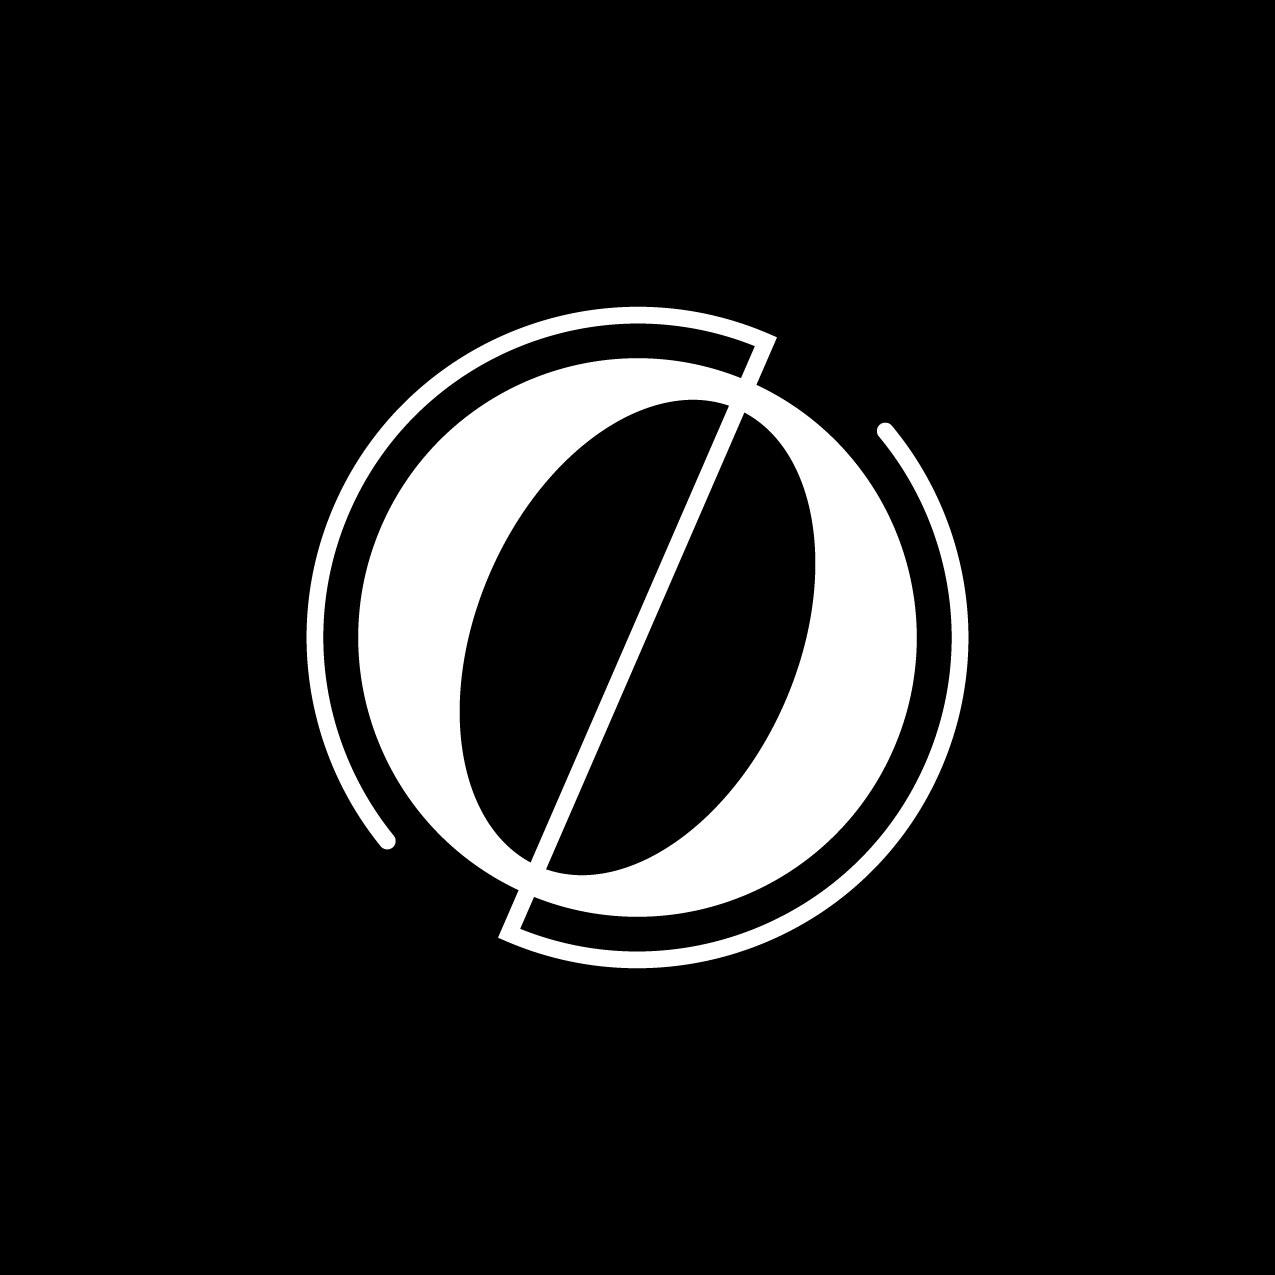 Letter O3 Design by Furia